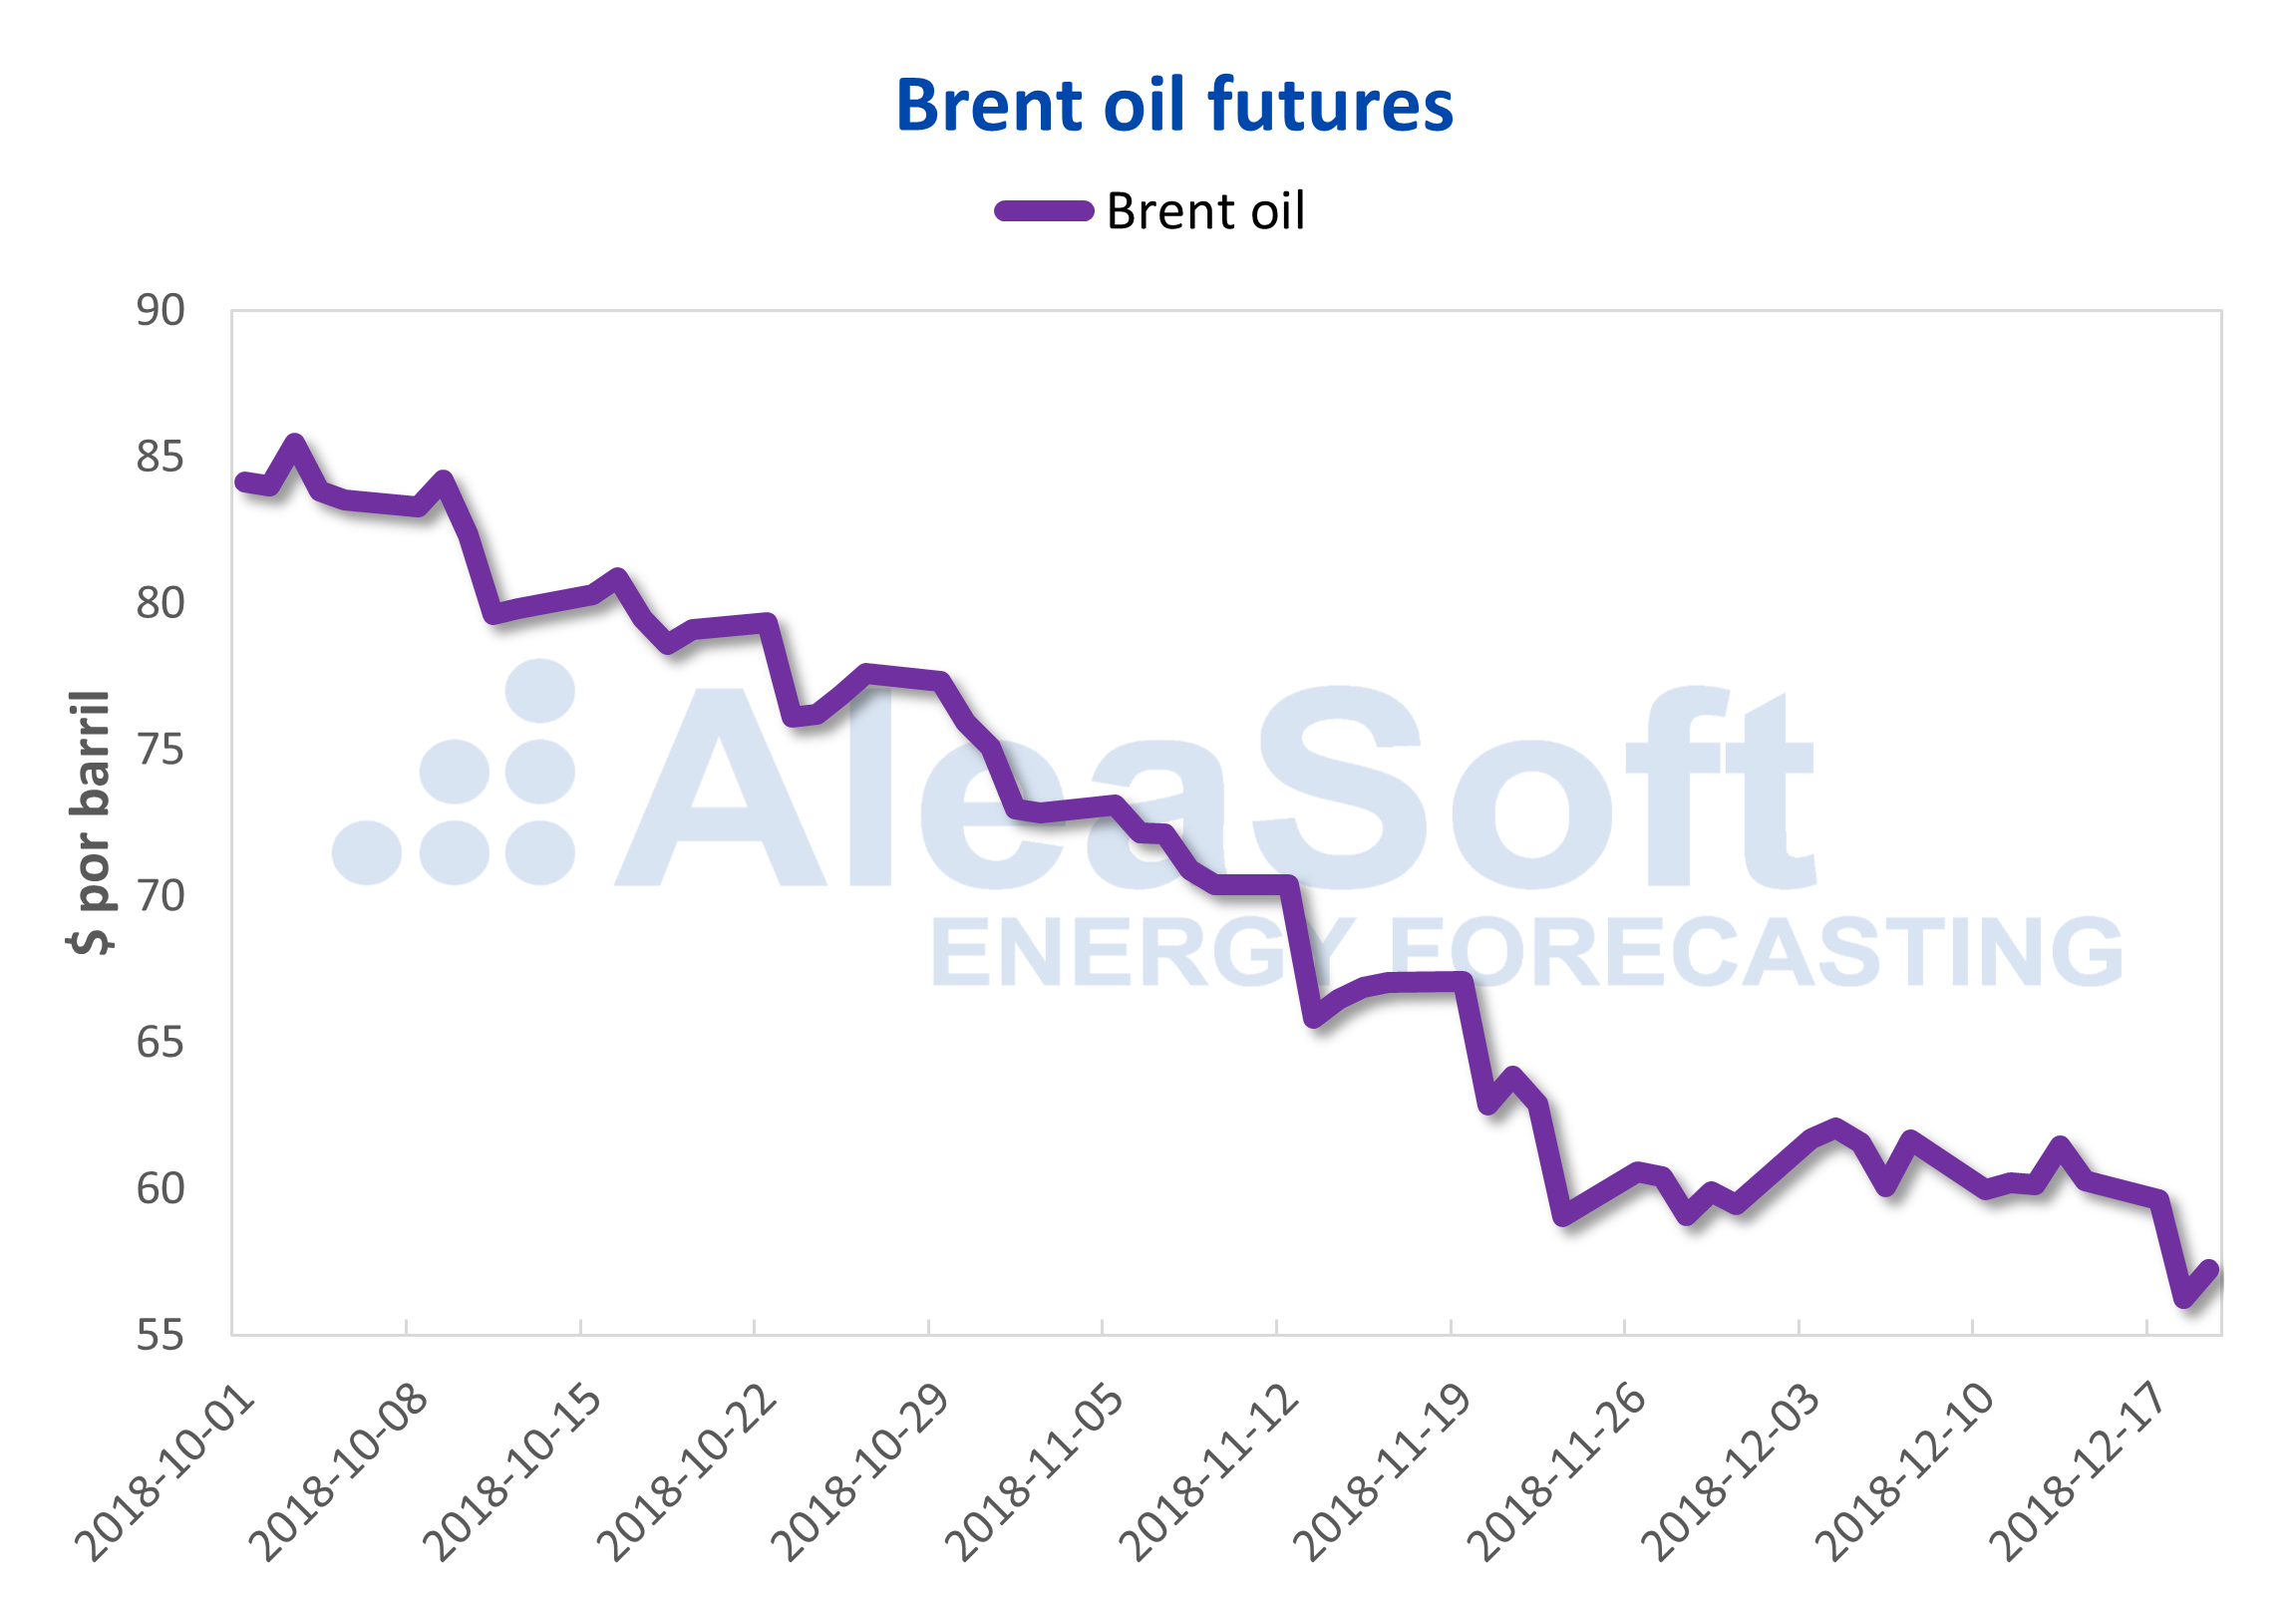 AleaSoft - Brent oil futures price